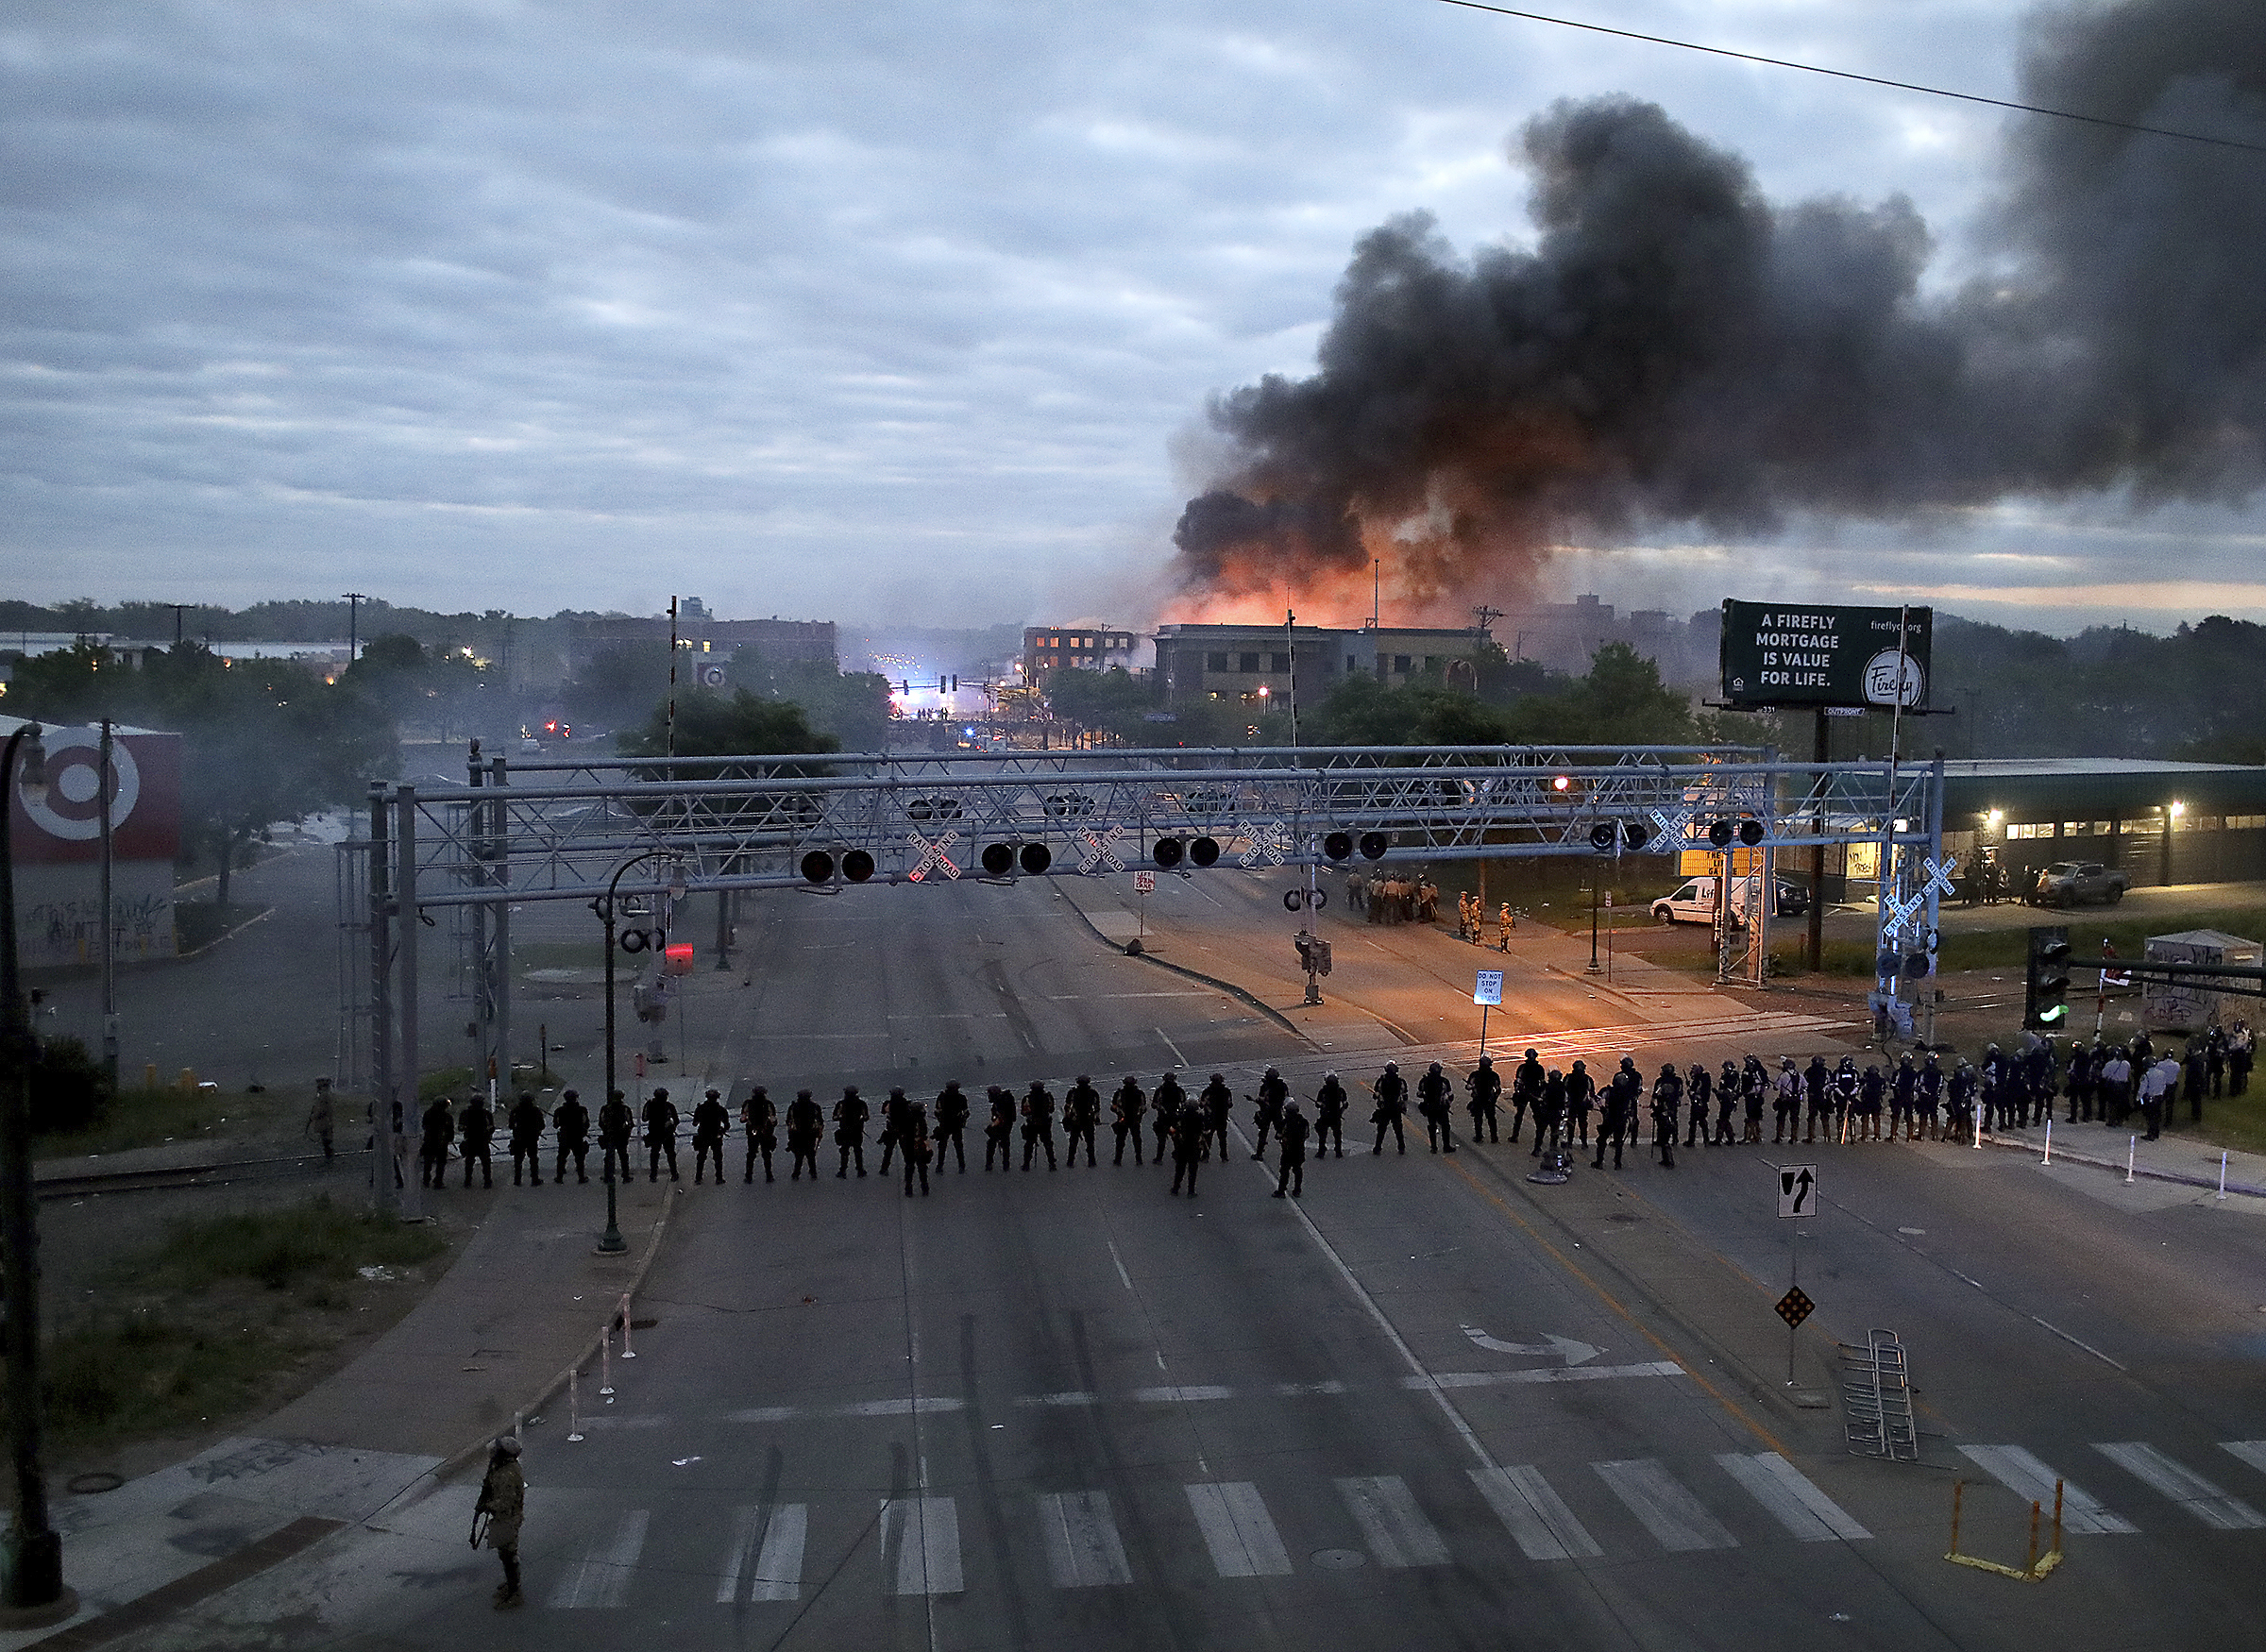 Law enforcement officers amassed along Lake Street near Hiawatha Avenue as fires burned after a night of unrest and protests in Minneapolis on May 29.